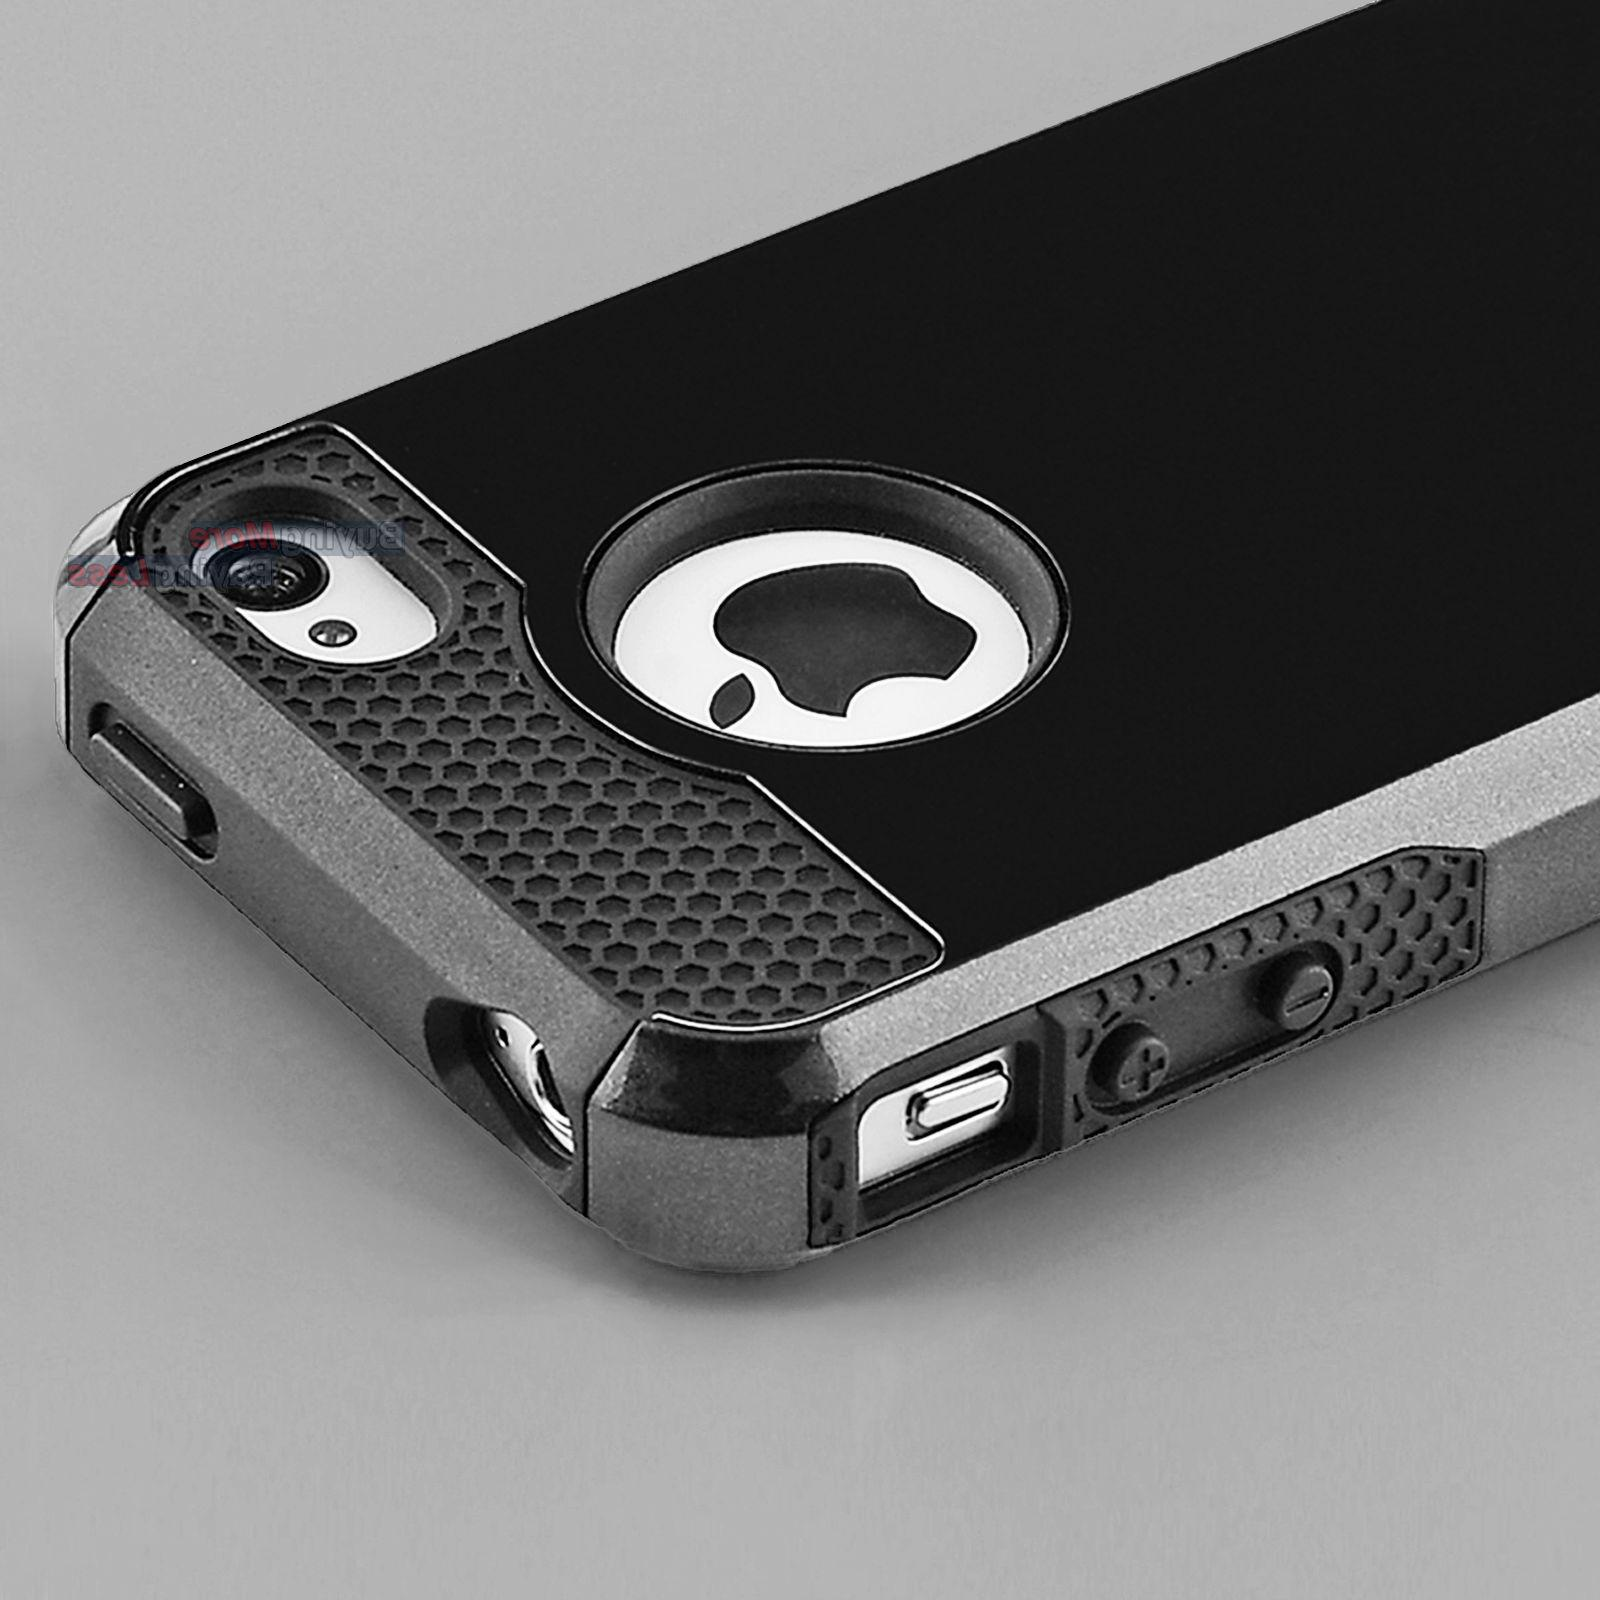 Hybrid Shockproof Hard Rugged Heavy Duty Cover Case For Appl